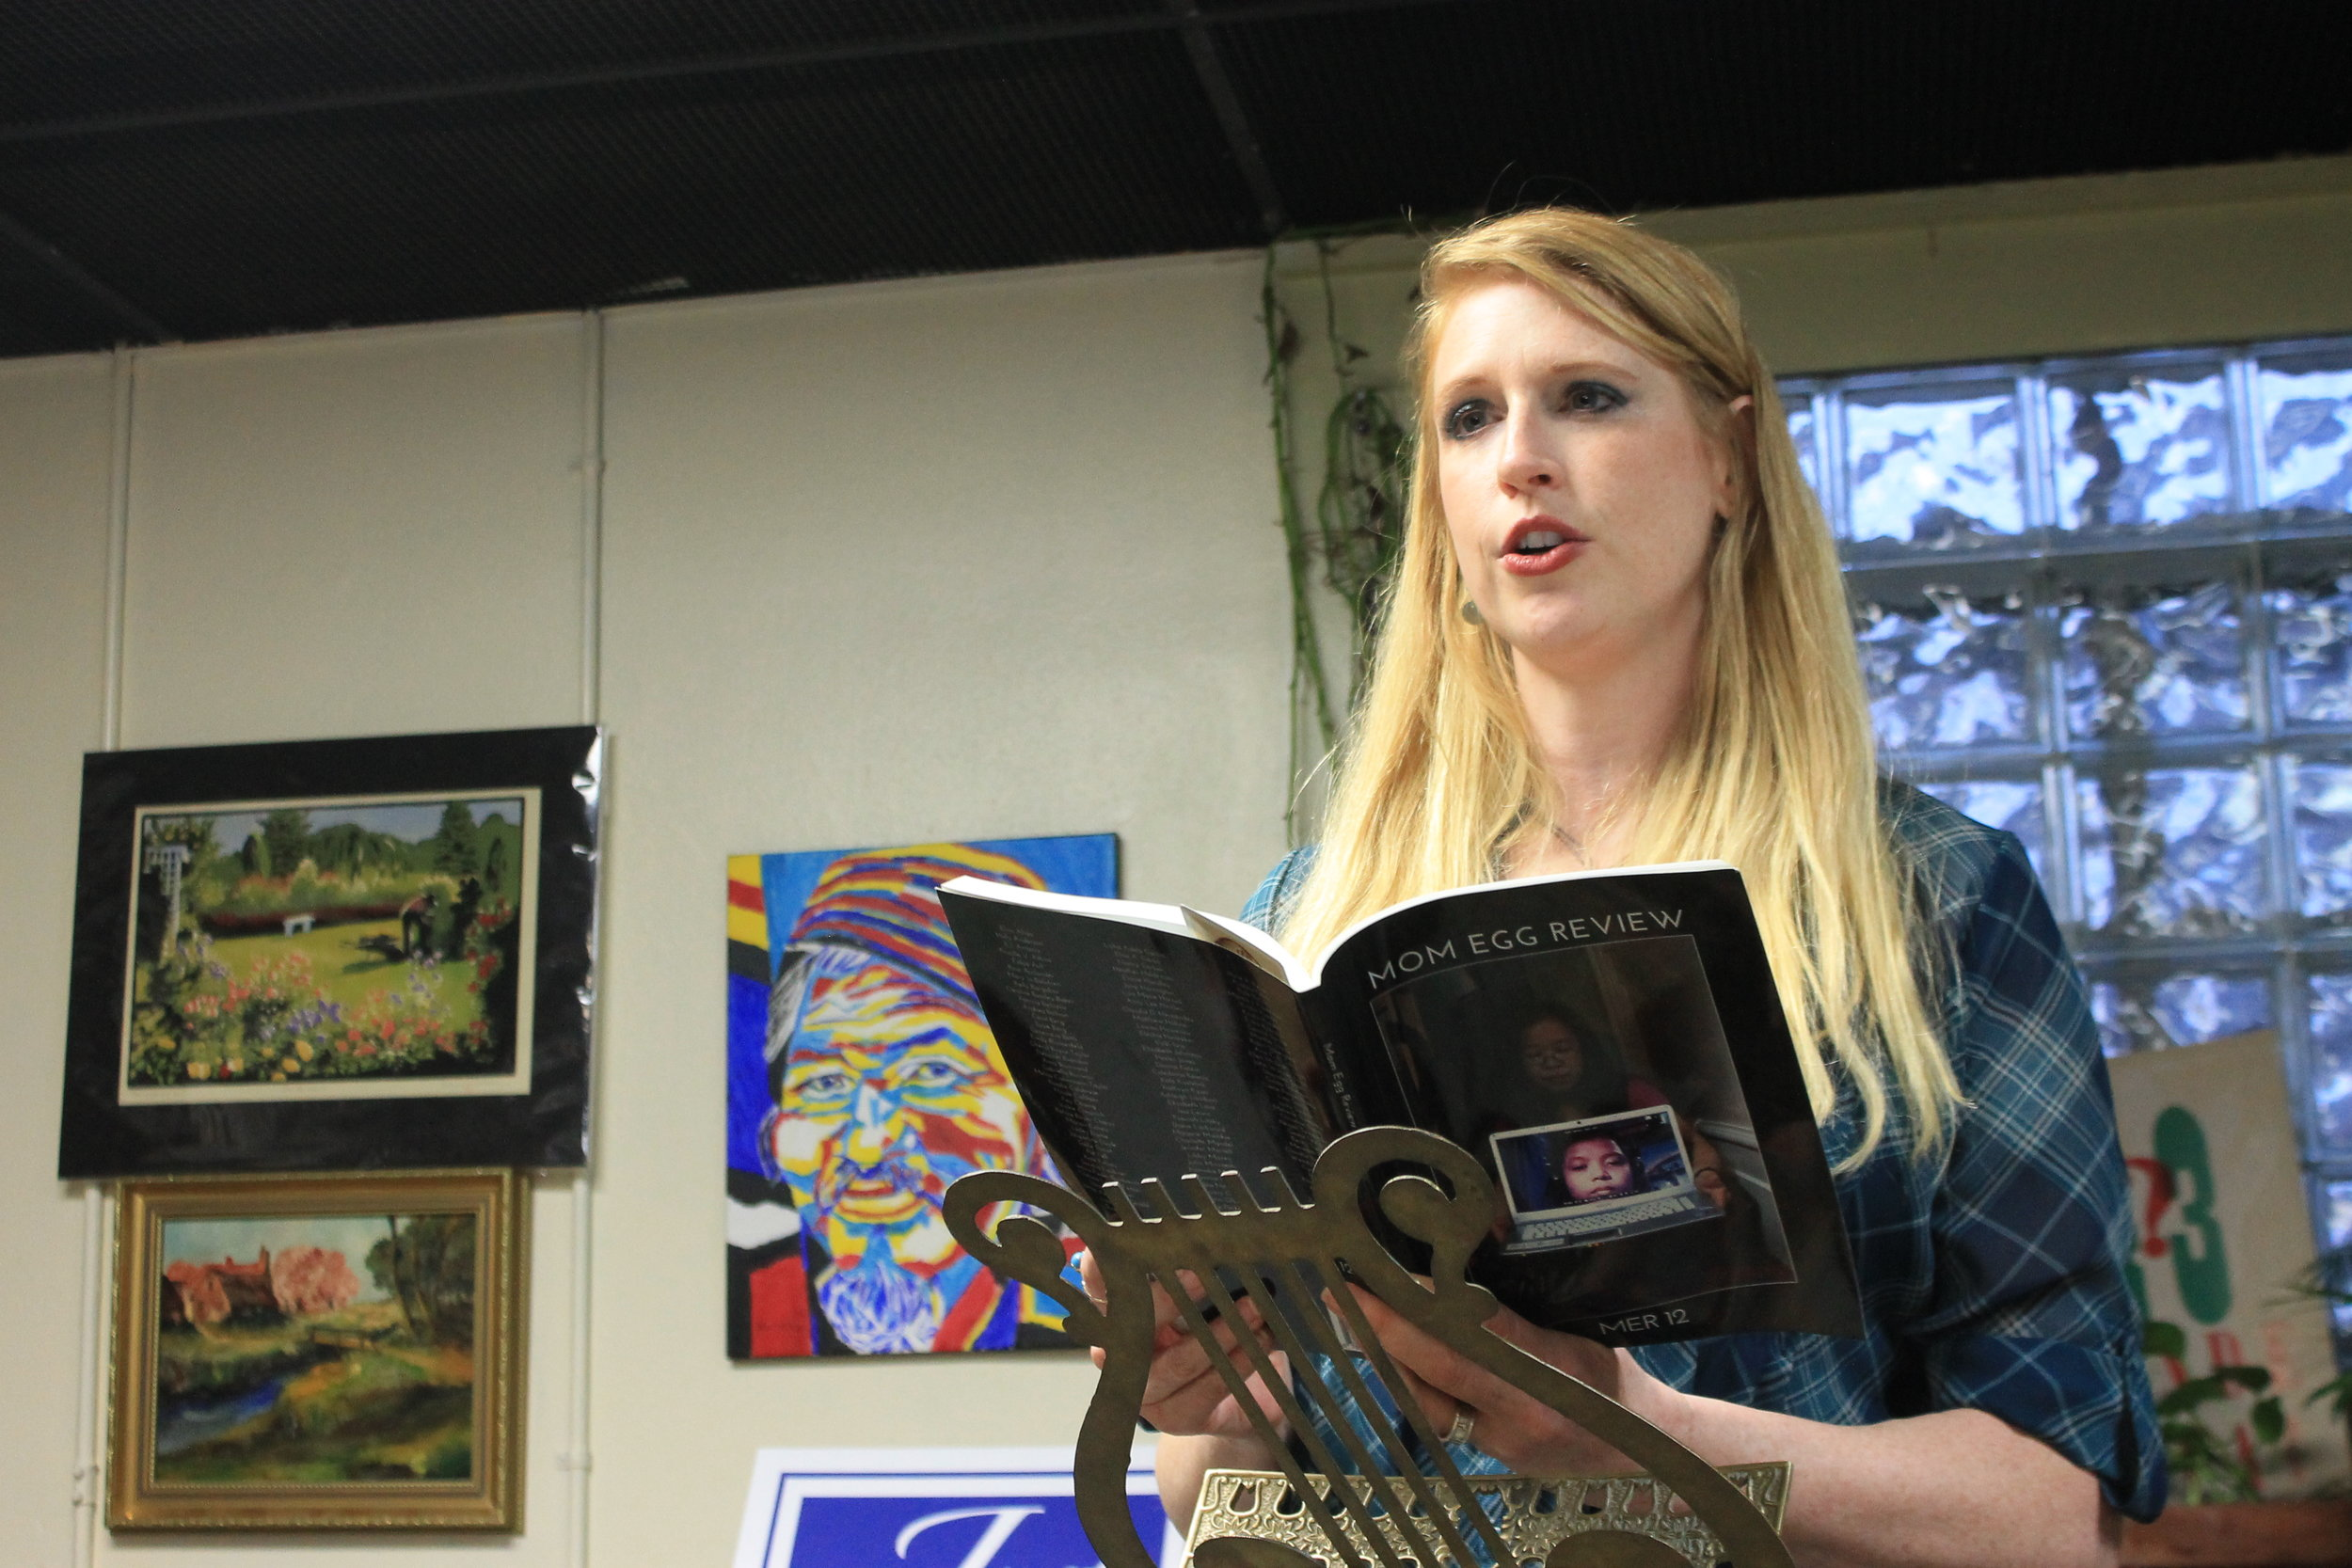 Elizabeth Johnston reads at Just Poets open mic on Wednesday, April 12th at Before Your Quiet Eyes.